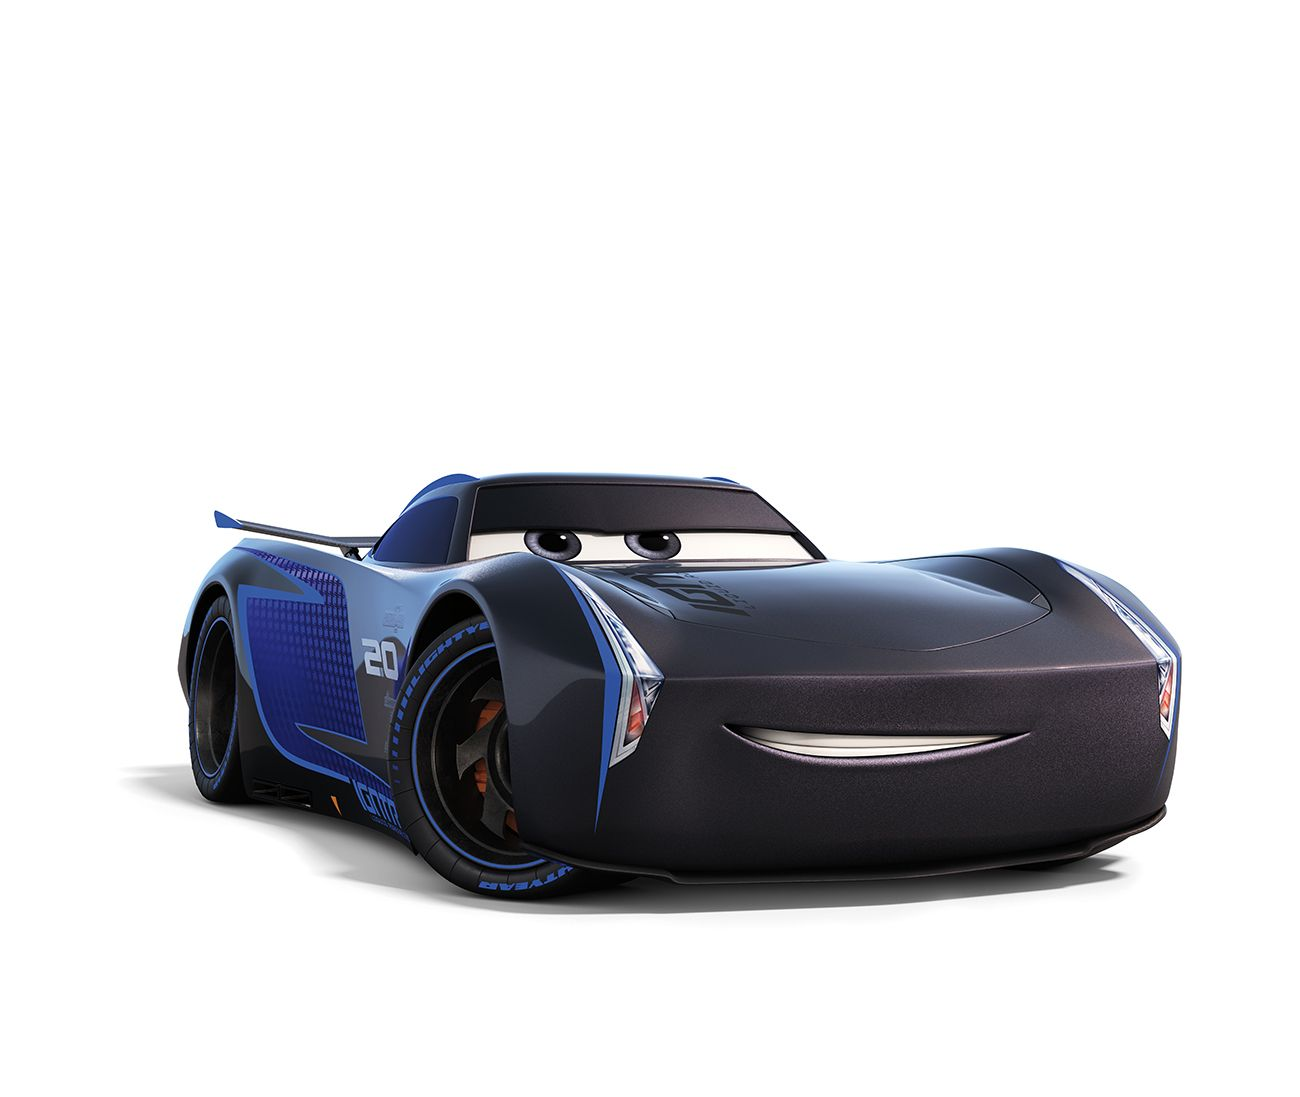 meet the cars 3 character lineup cars pinterest monde fantastique cesar et pliage. Black Bedroom Furniture Sets. Home Design Ideas